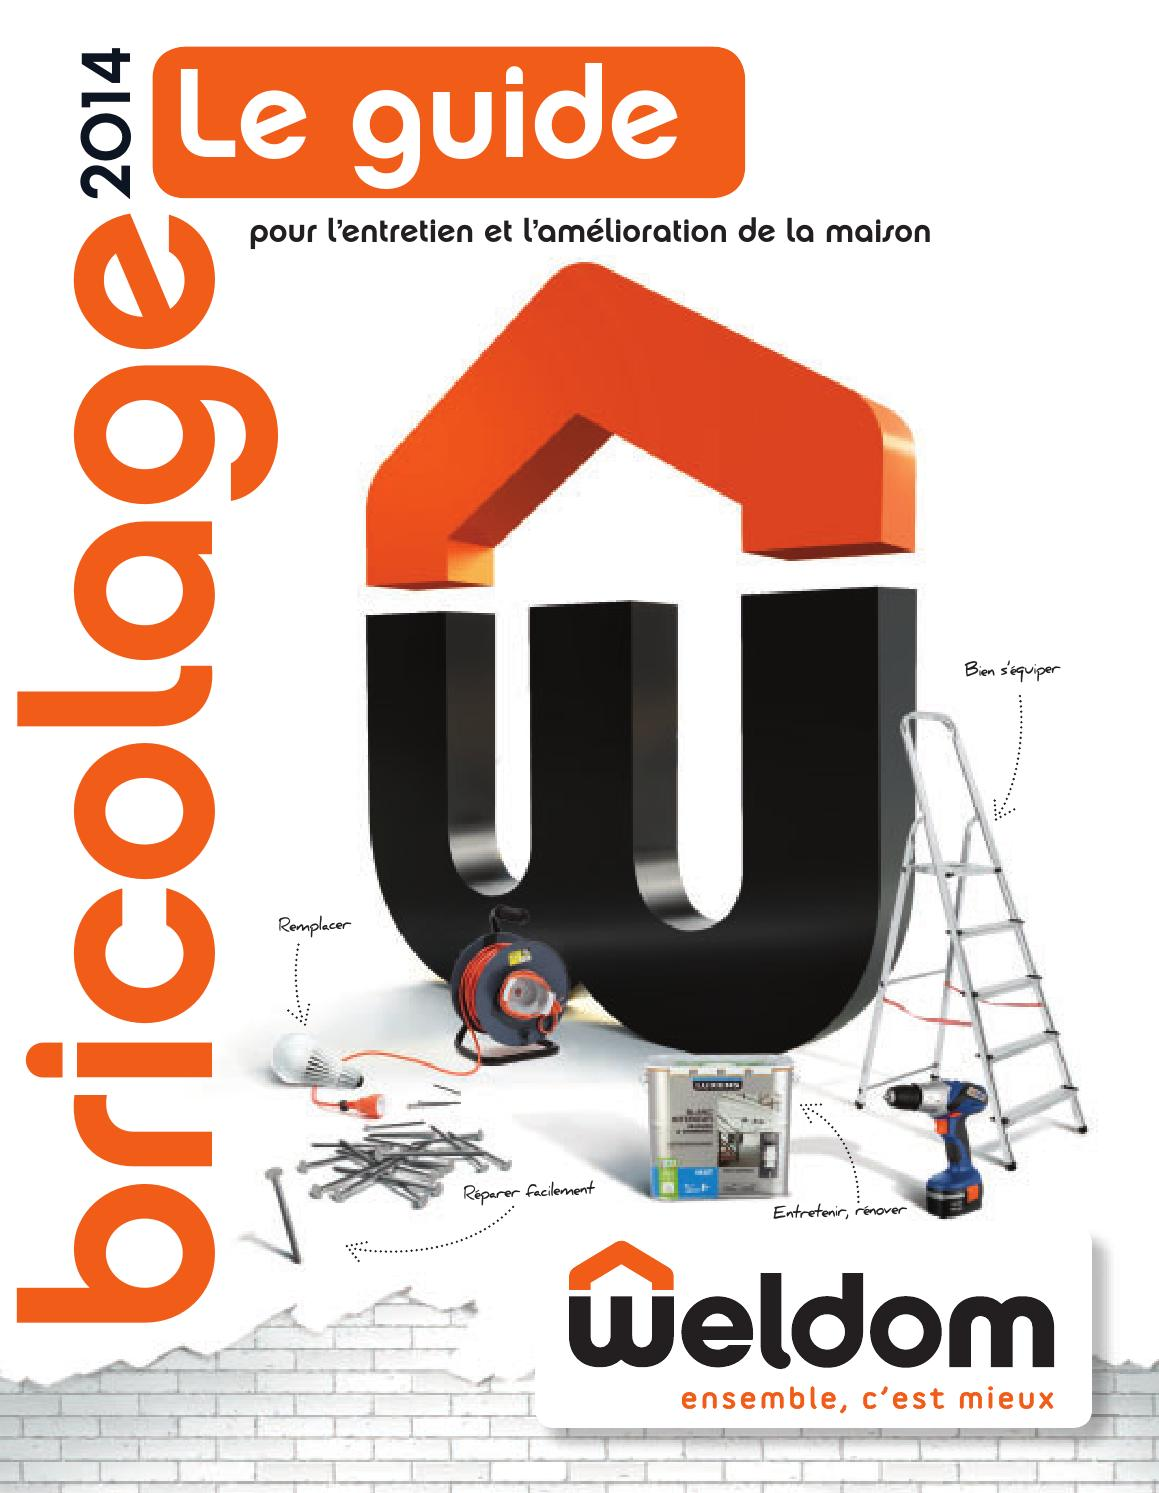 Guide complet 072 by aude van enst - issuu